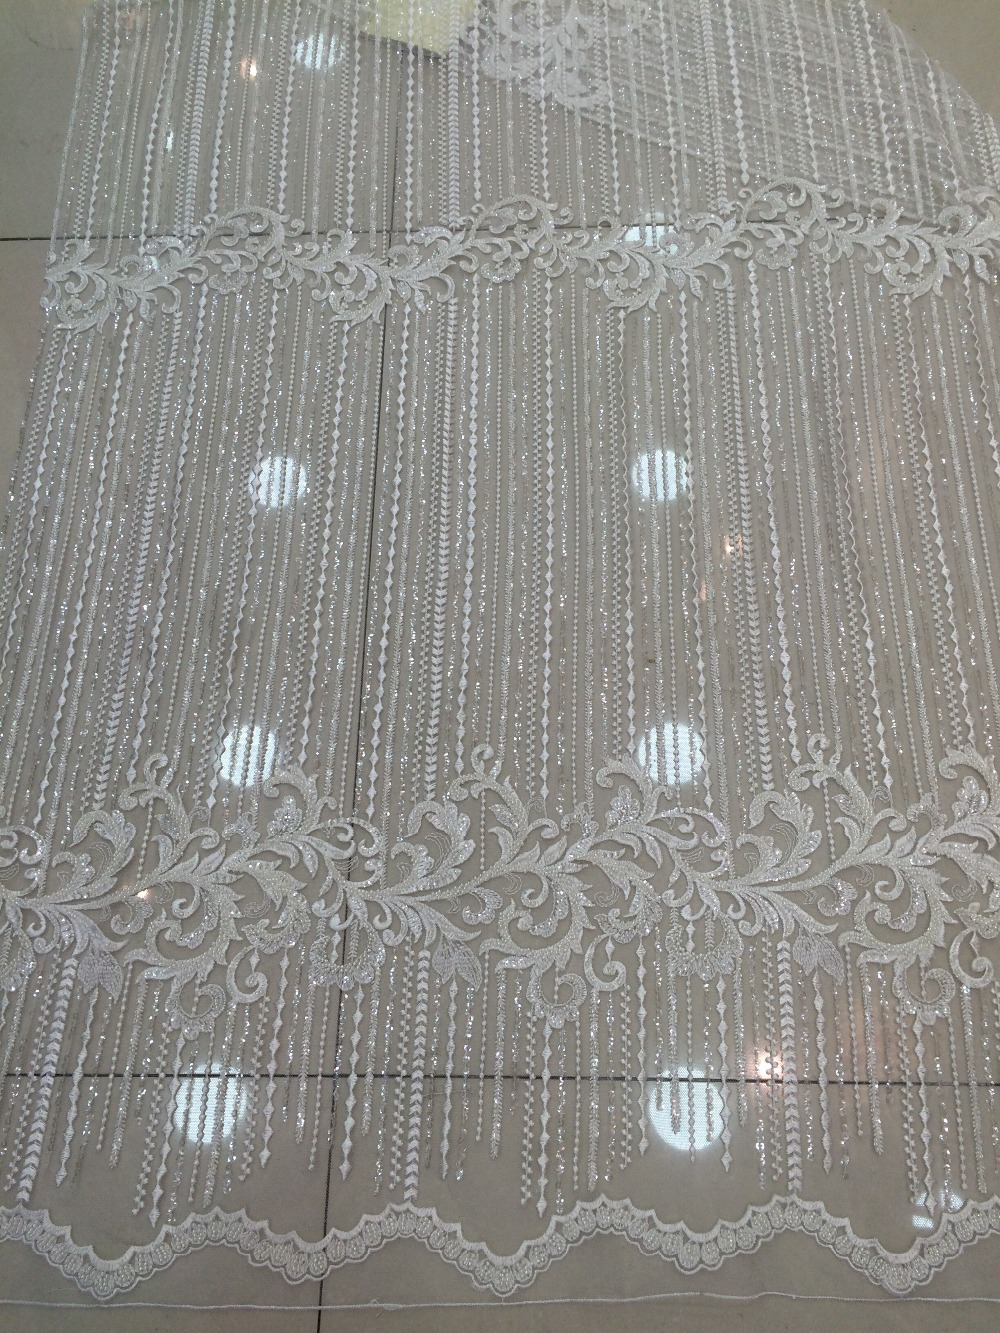 Hot selling net tulle lace new arrival LJY 110901 1 african lace fabric beaded french nigerian